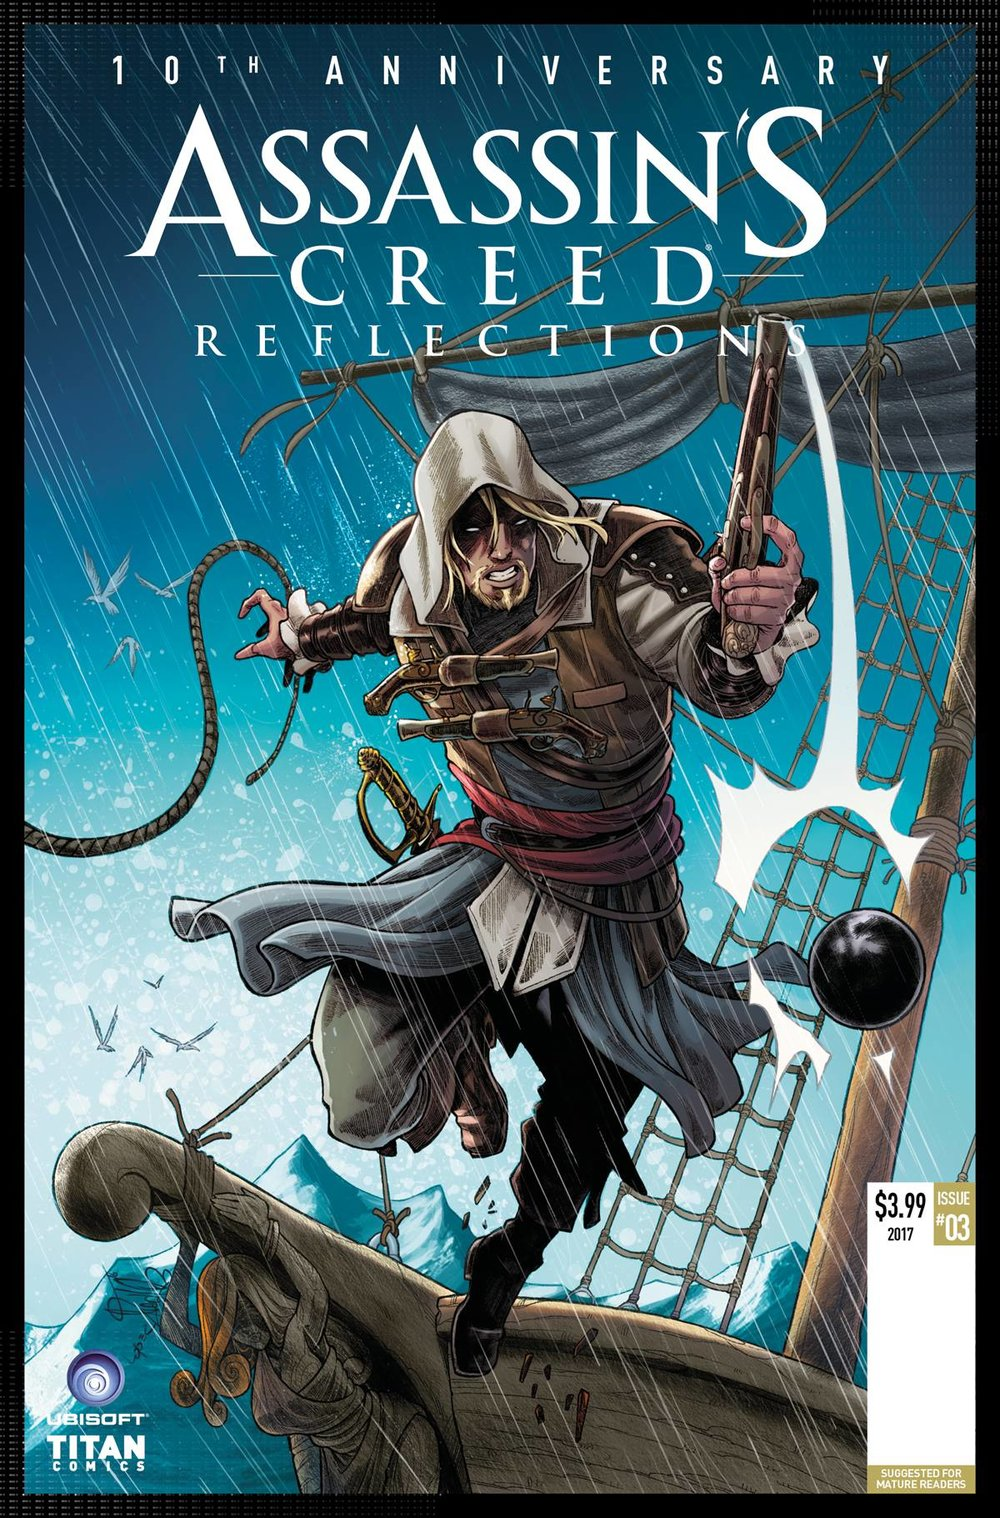 ASSASSINS CREED REFLECTIONS 3 of 4 CVR B ARRANZ.jpg